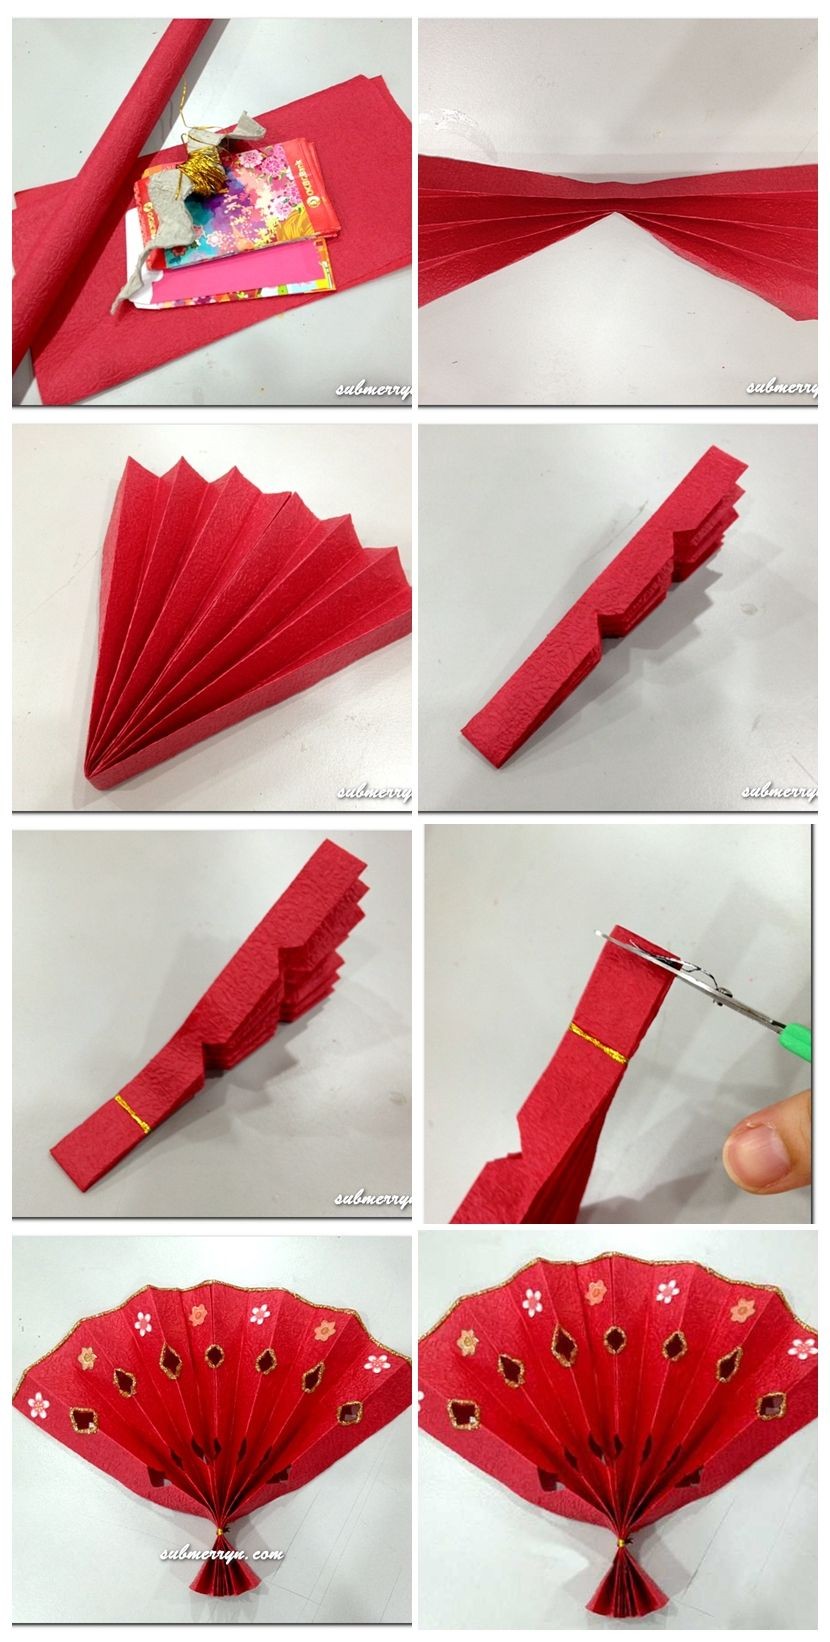 Diy Chinese New Year Fan For Little Ones Could Add String Tassels Chinese Words Cut Out